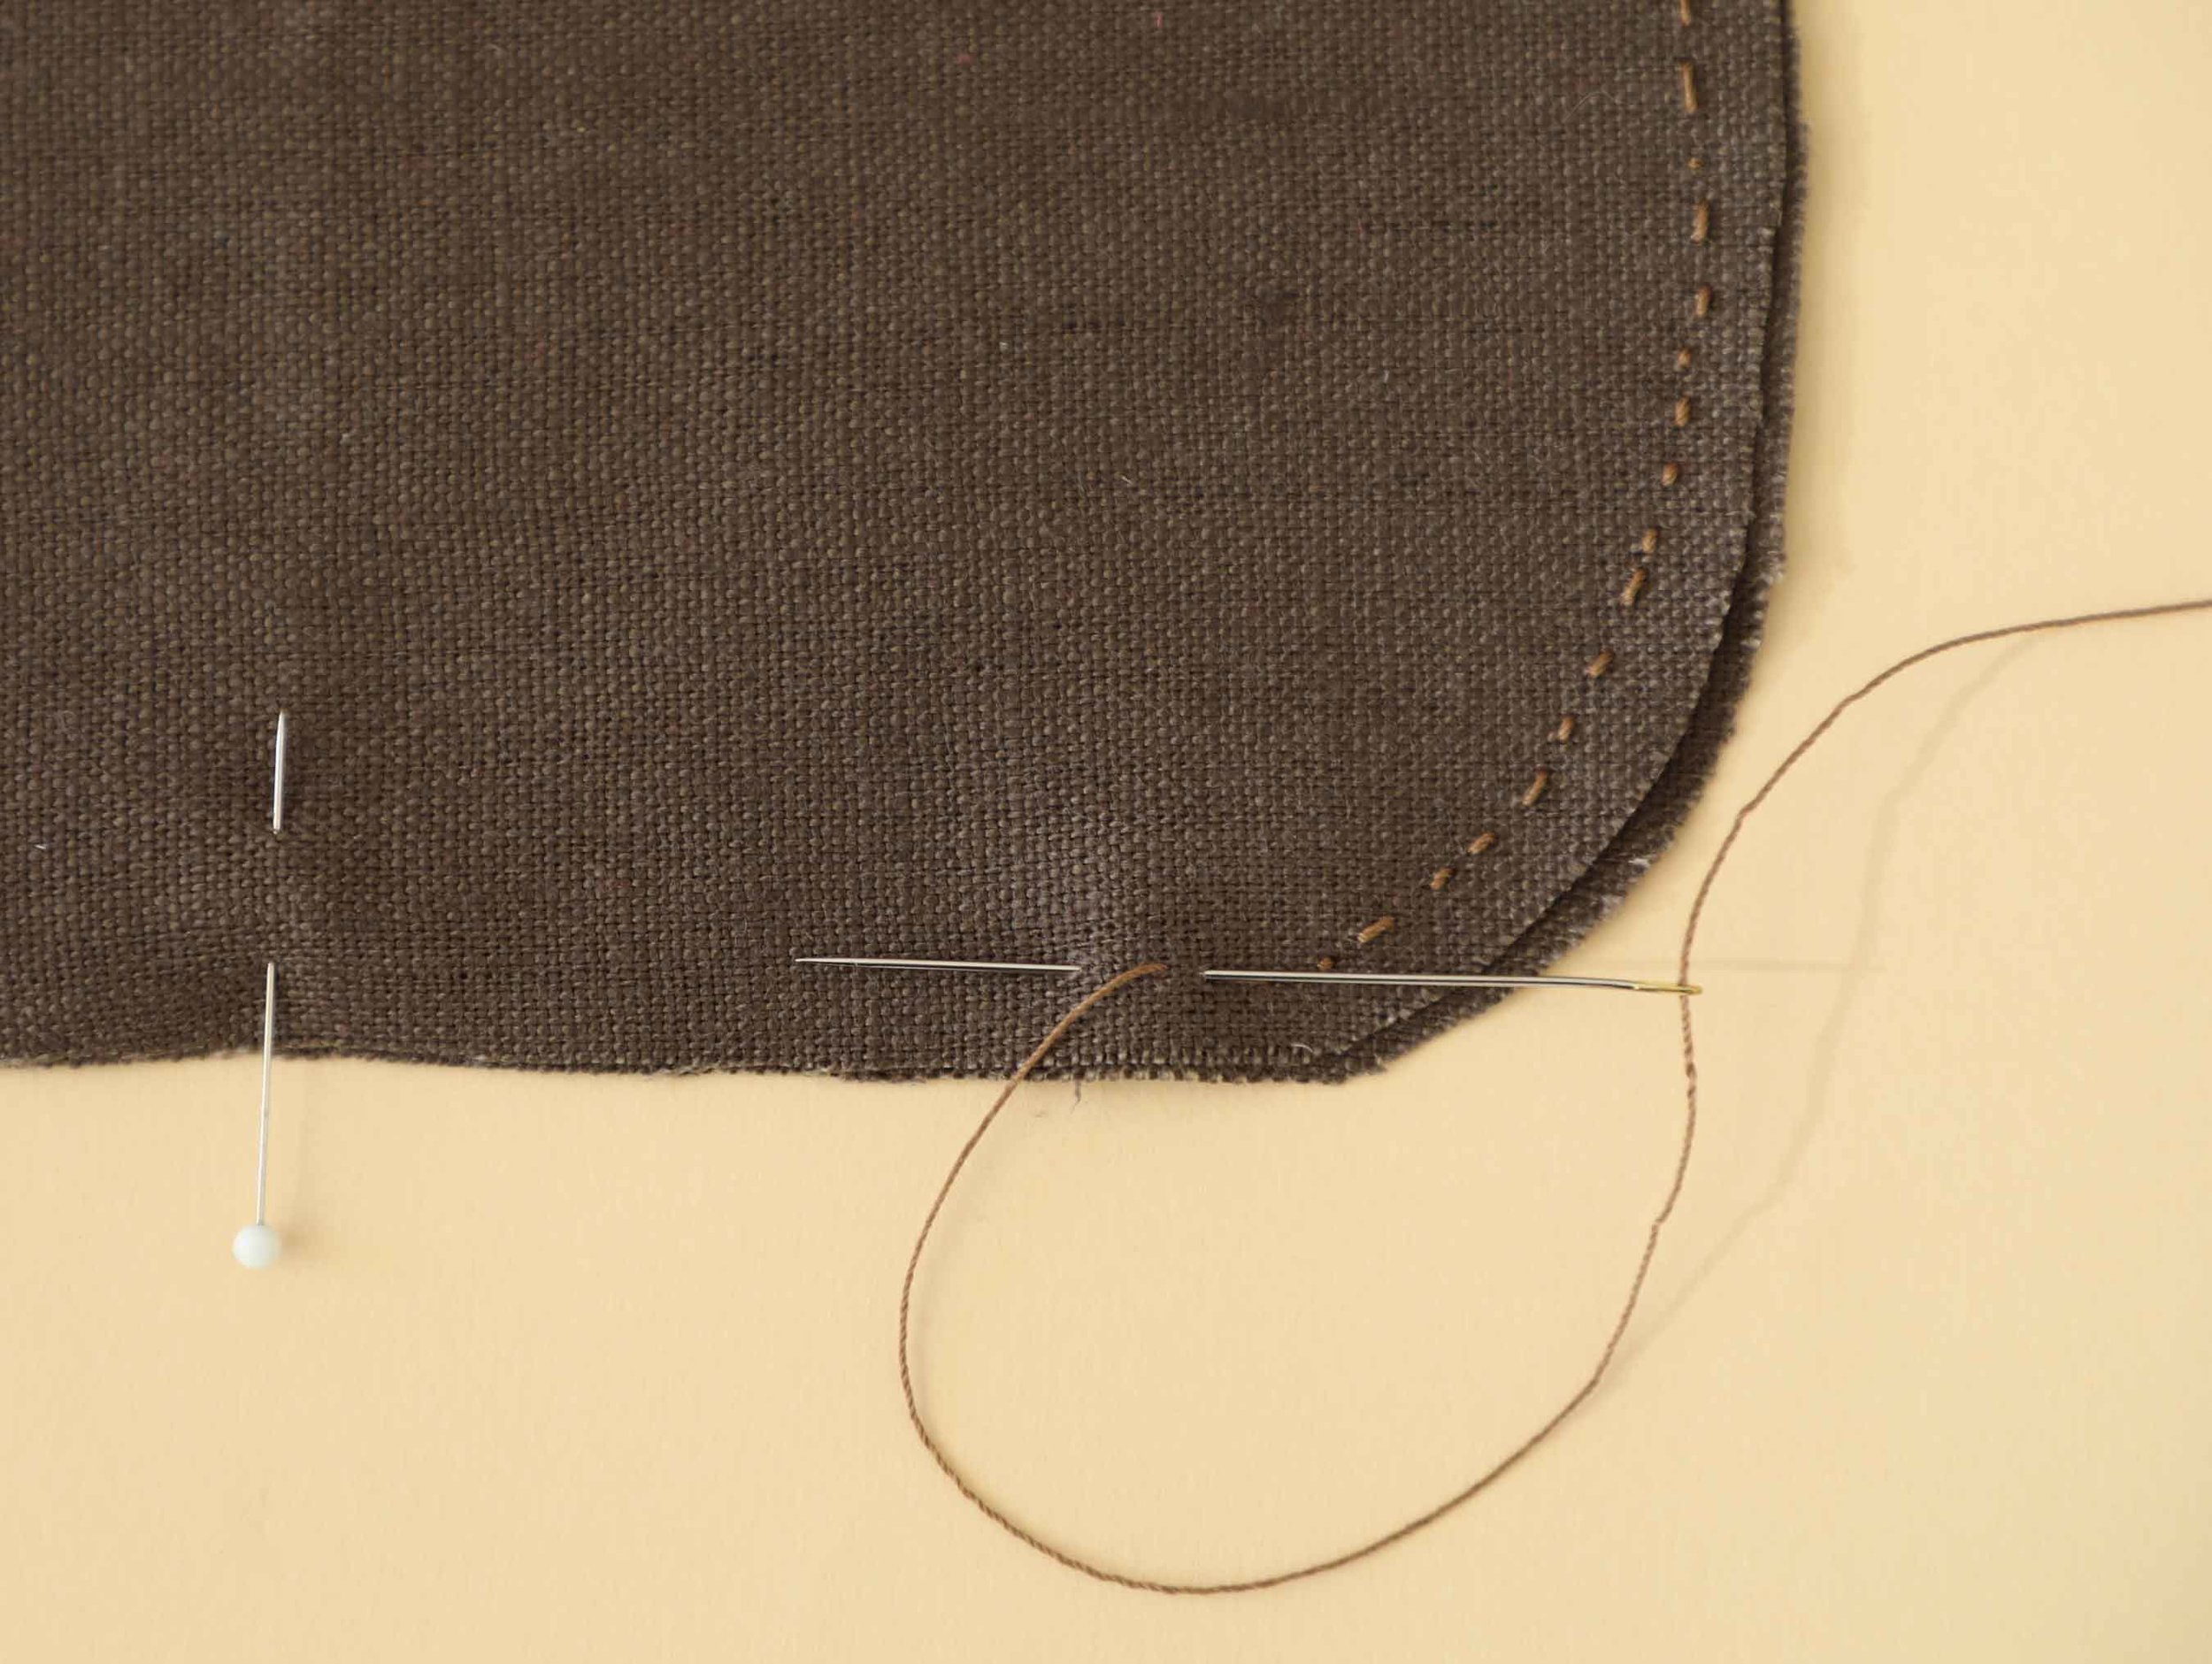 Backstitching is a simple and secure way to attach our japan-inspired pouch together. Stitch, turn and enjoy!